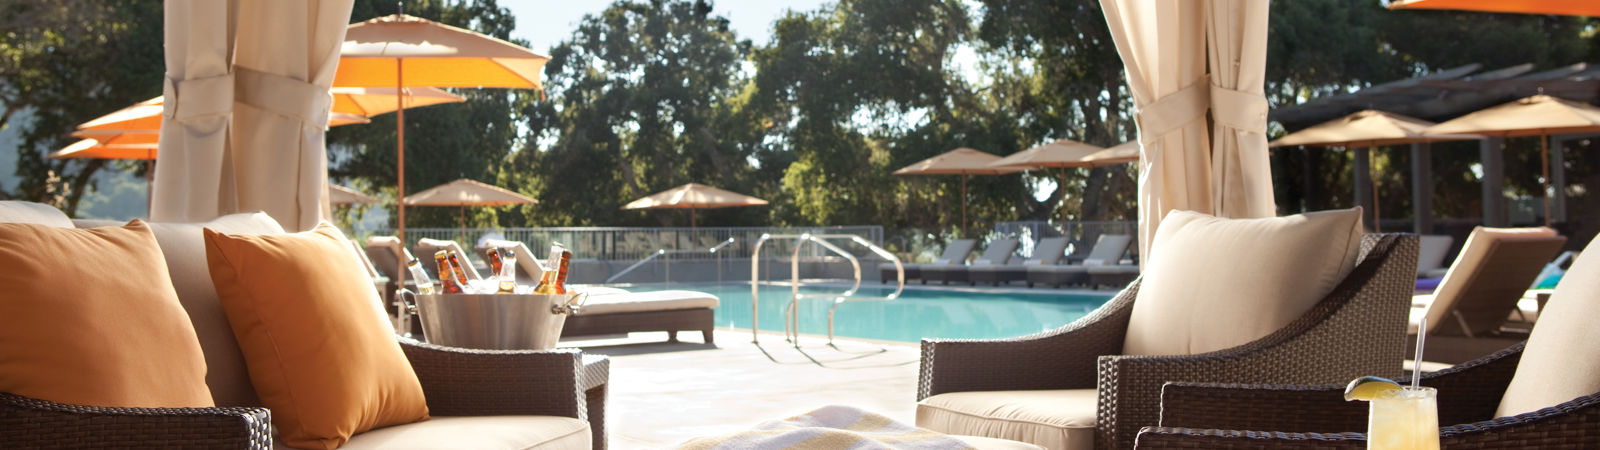 Carmel Valley Ranch_Property_Pool_Cabanas at lodge